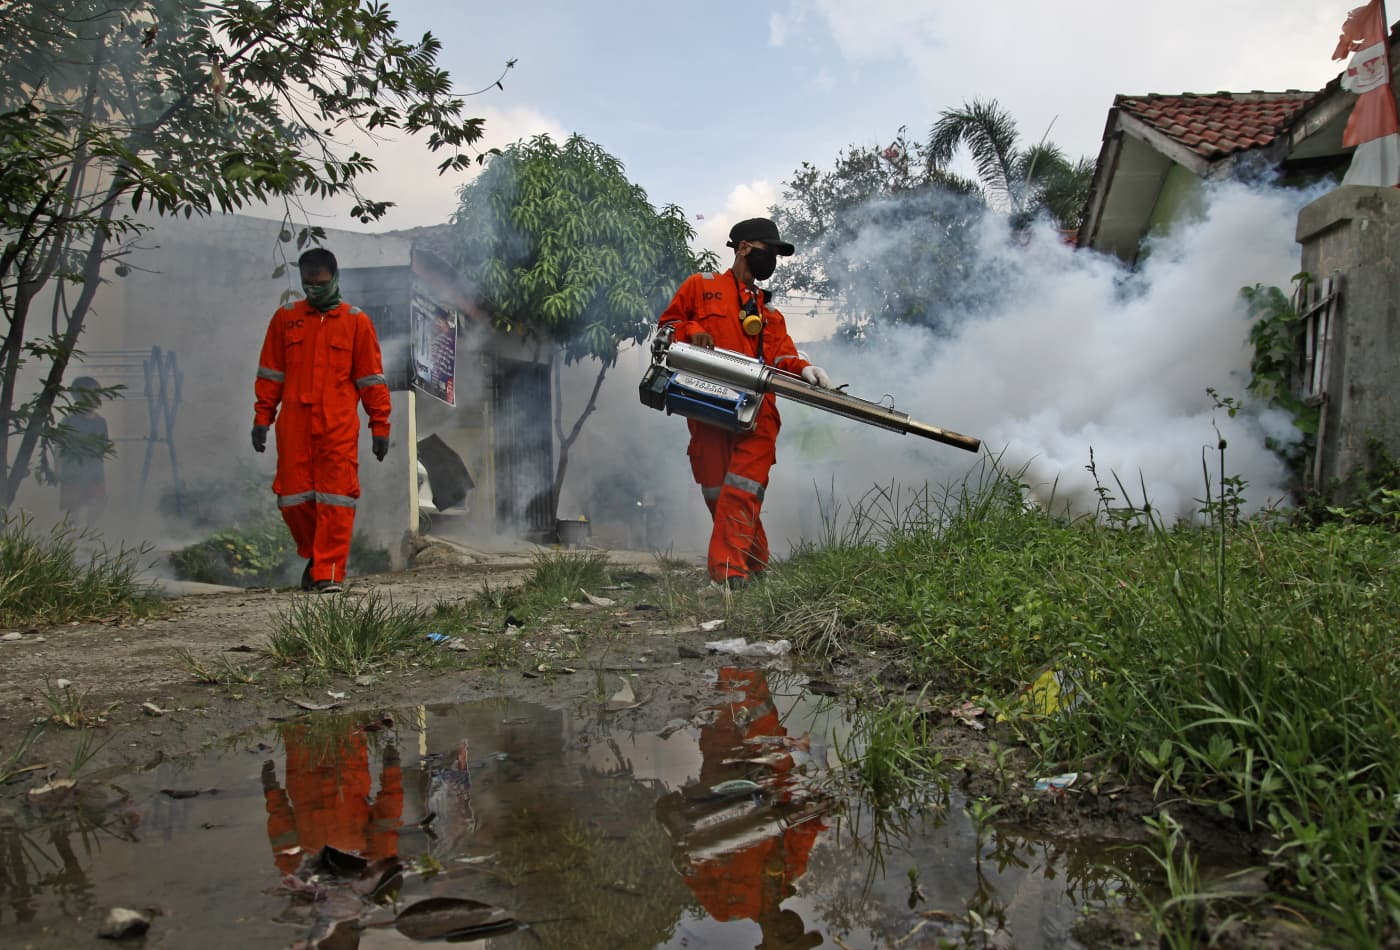 Outbreak of dengue fever in Southeast Asia is 'exploding' amid the coronavirus fight